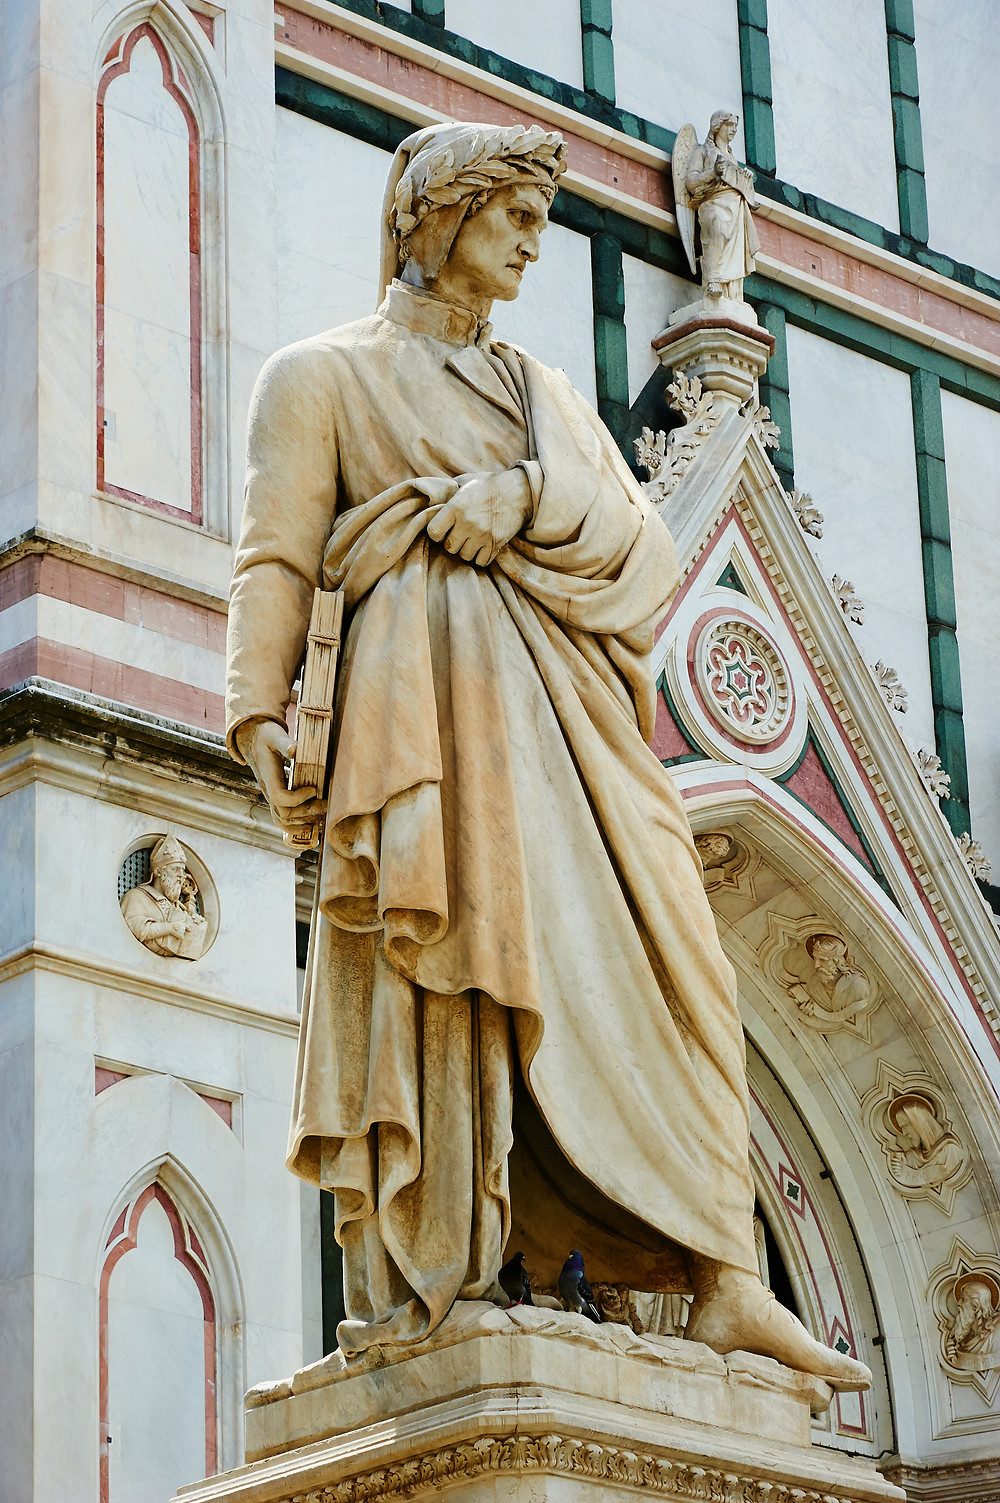 Dante statue in front of the Basilica of Santa Croce in Florence Italy